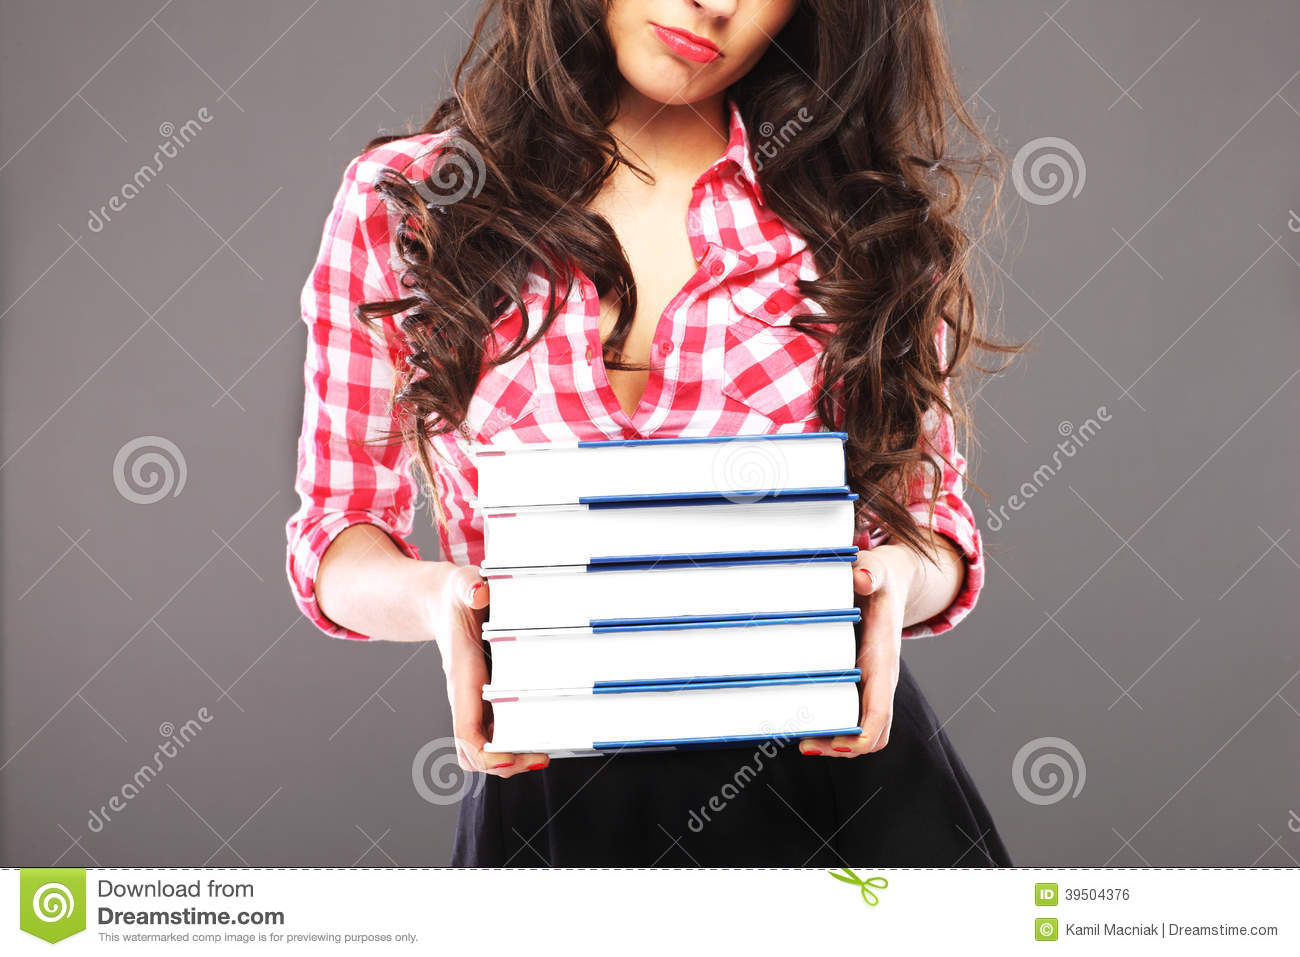 Sad woman with books